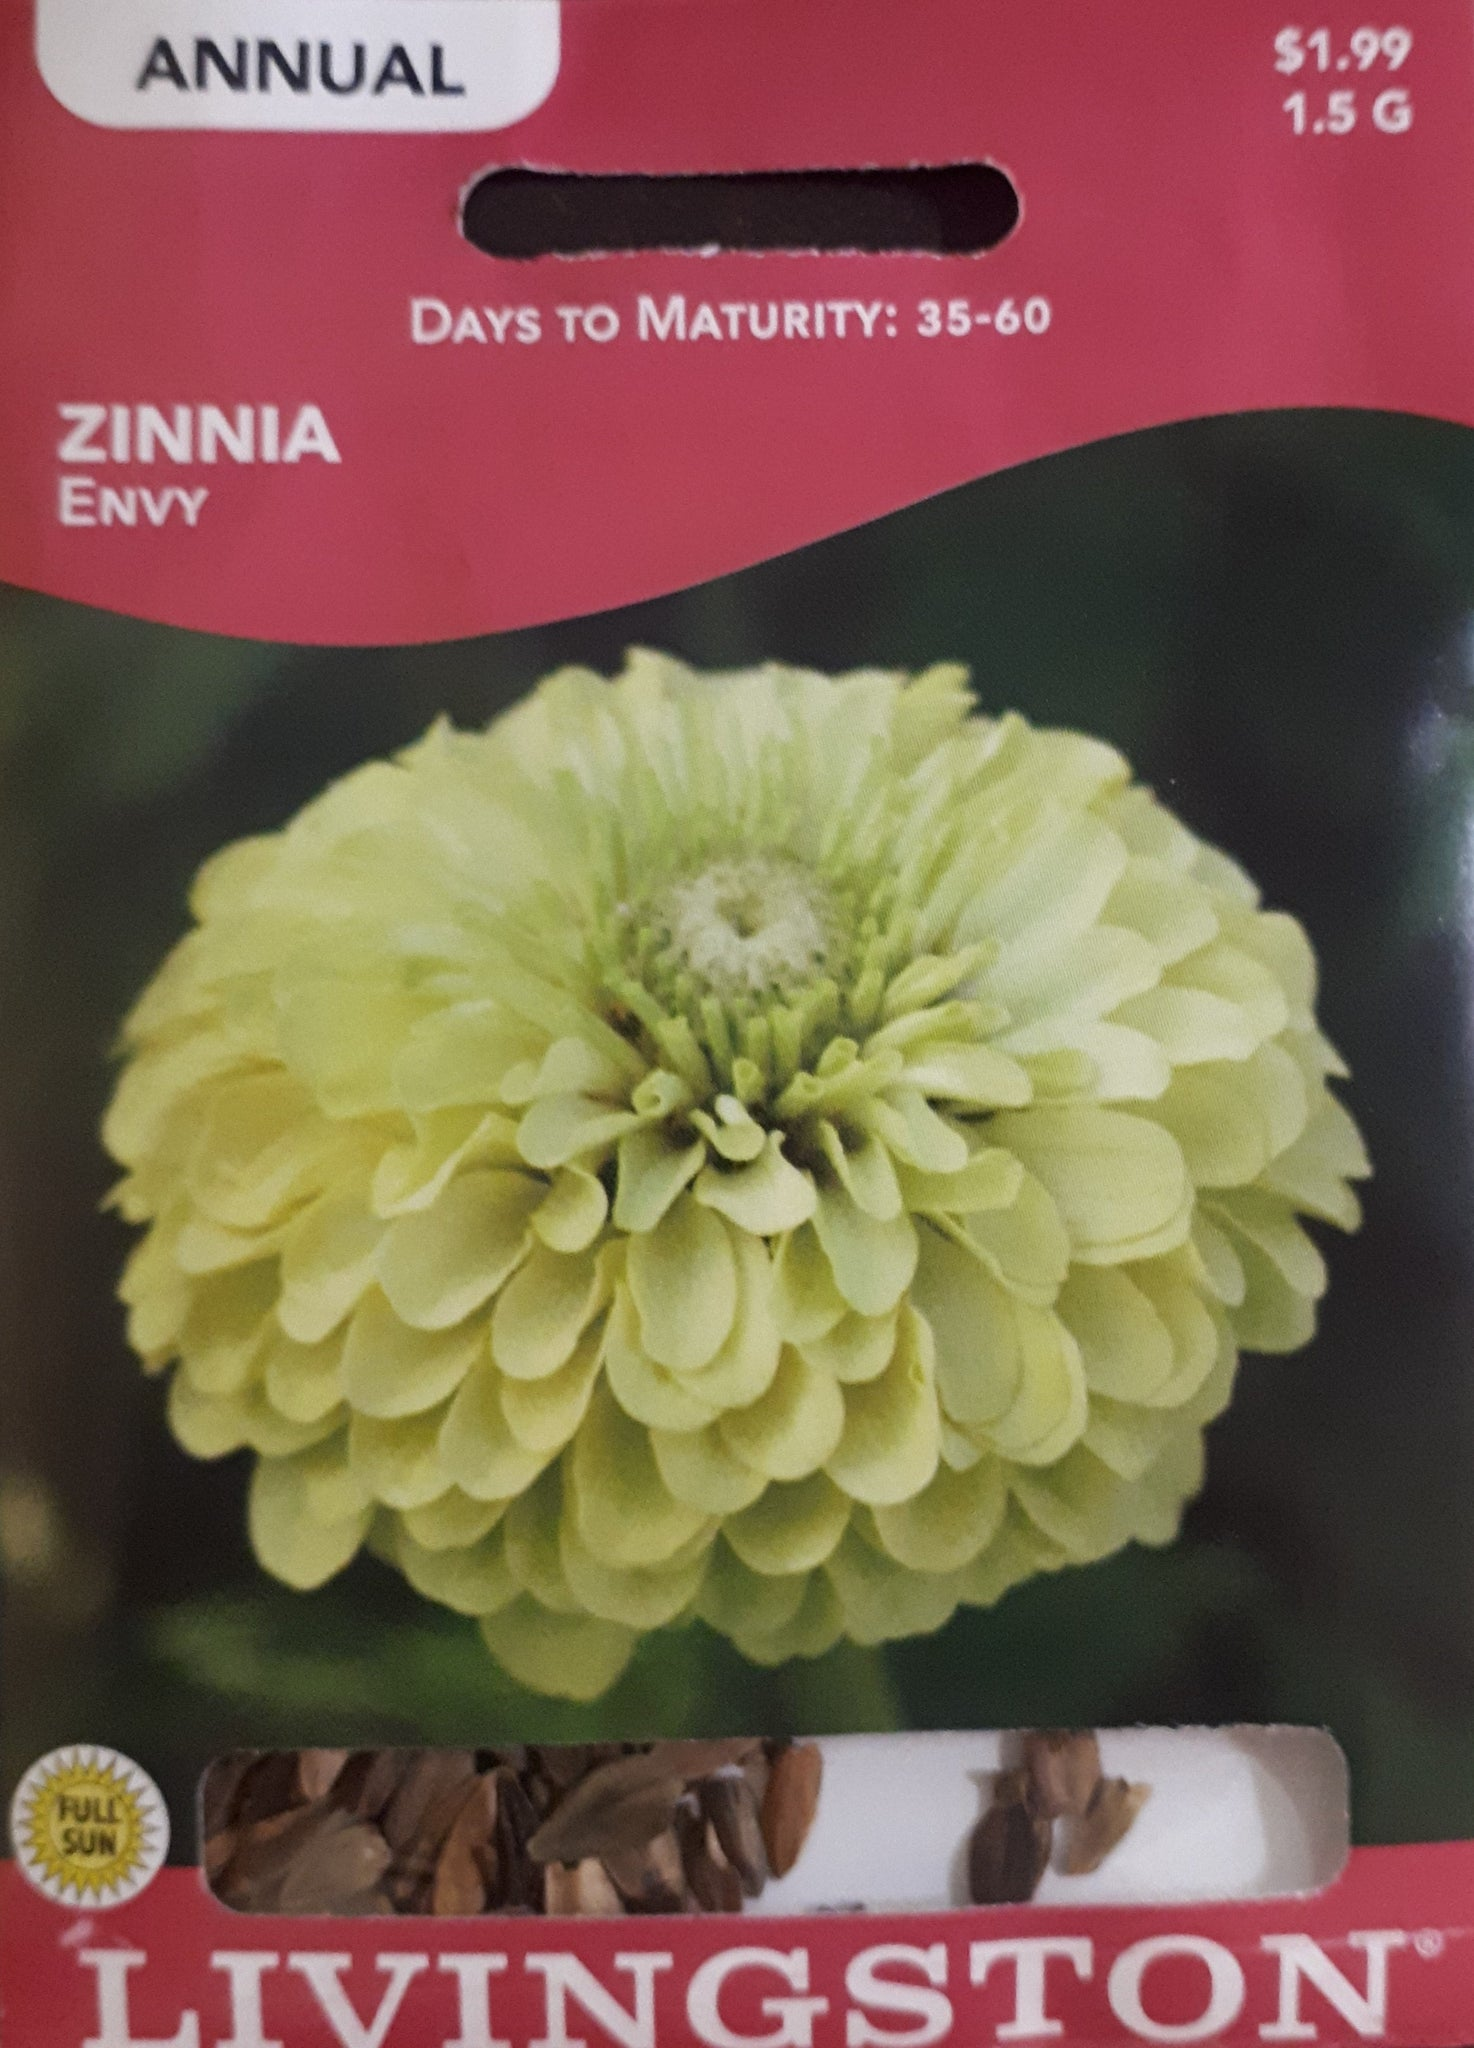 Livingston Seeds - Zinnia - Envy